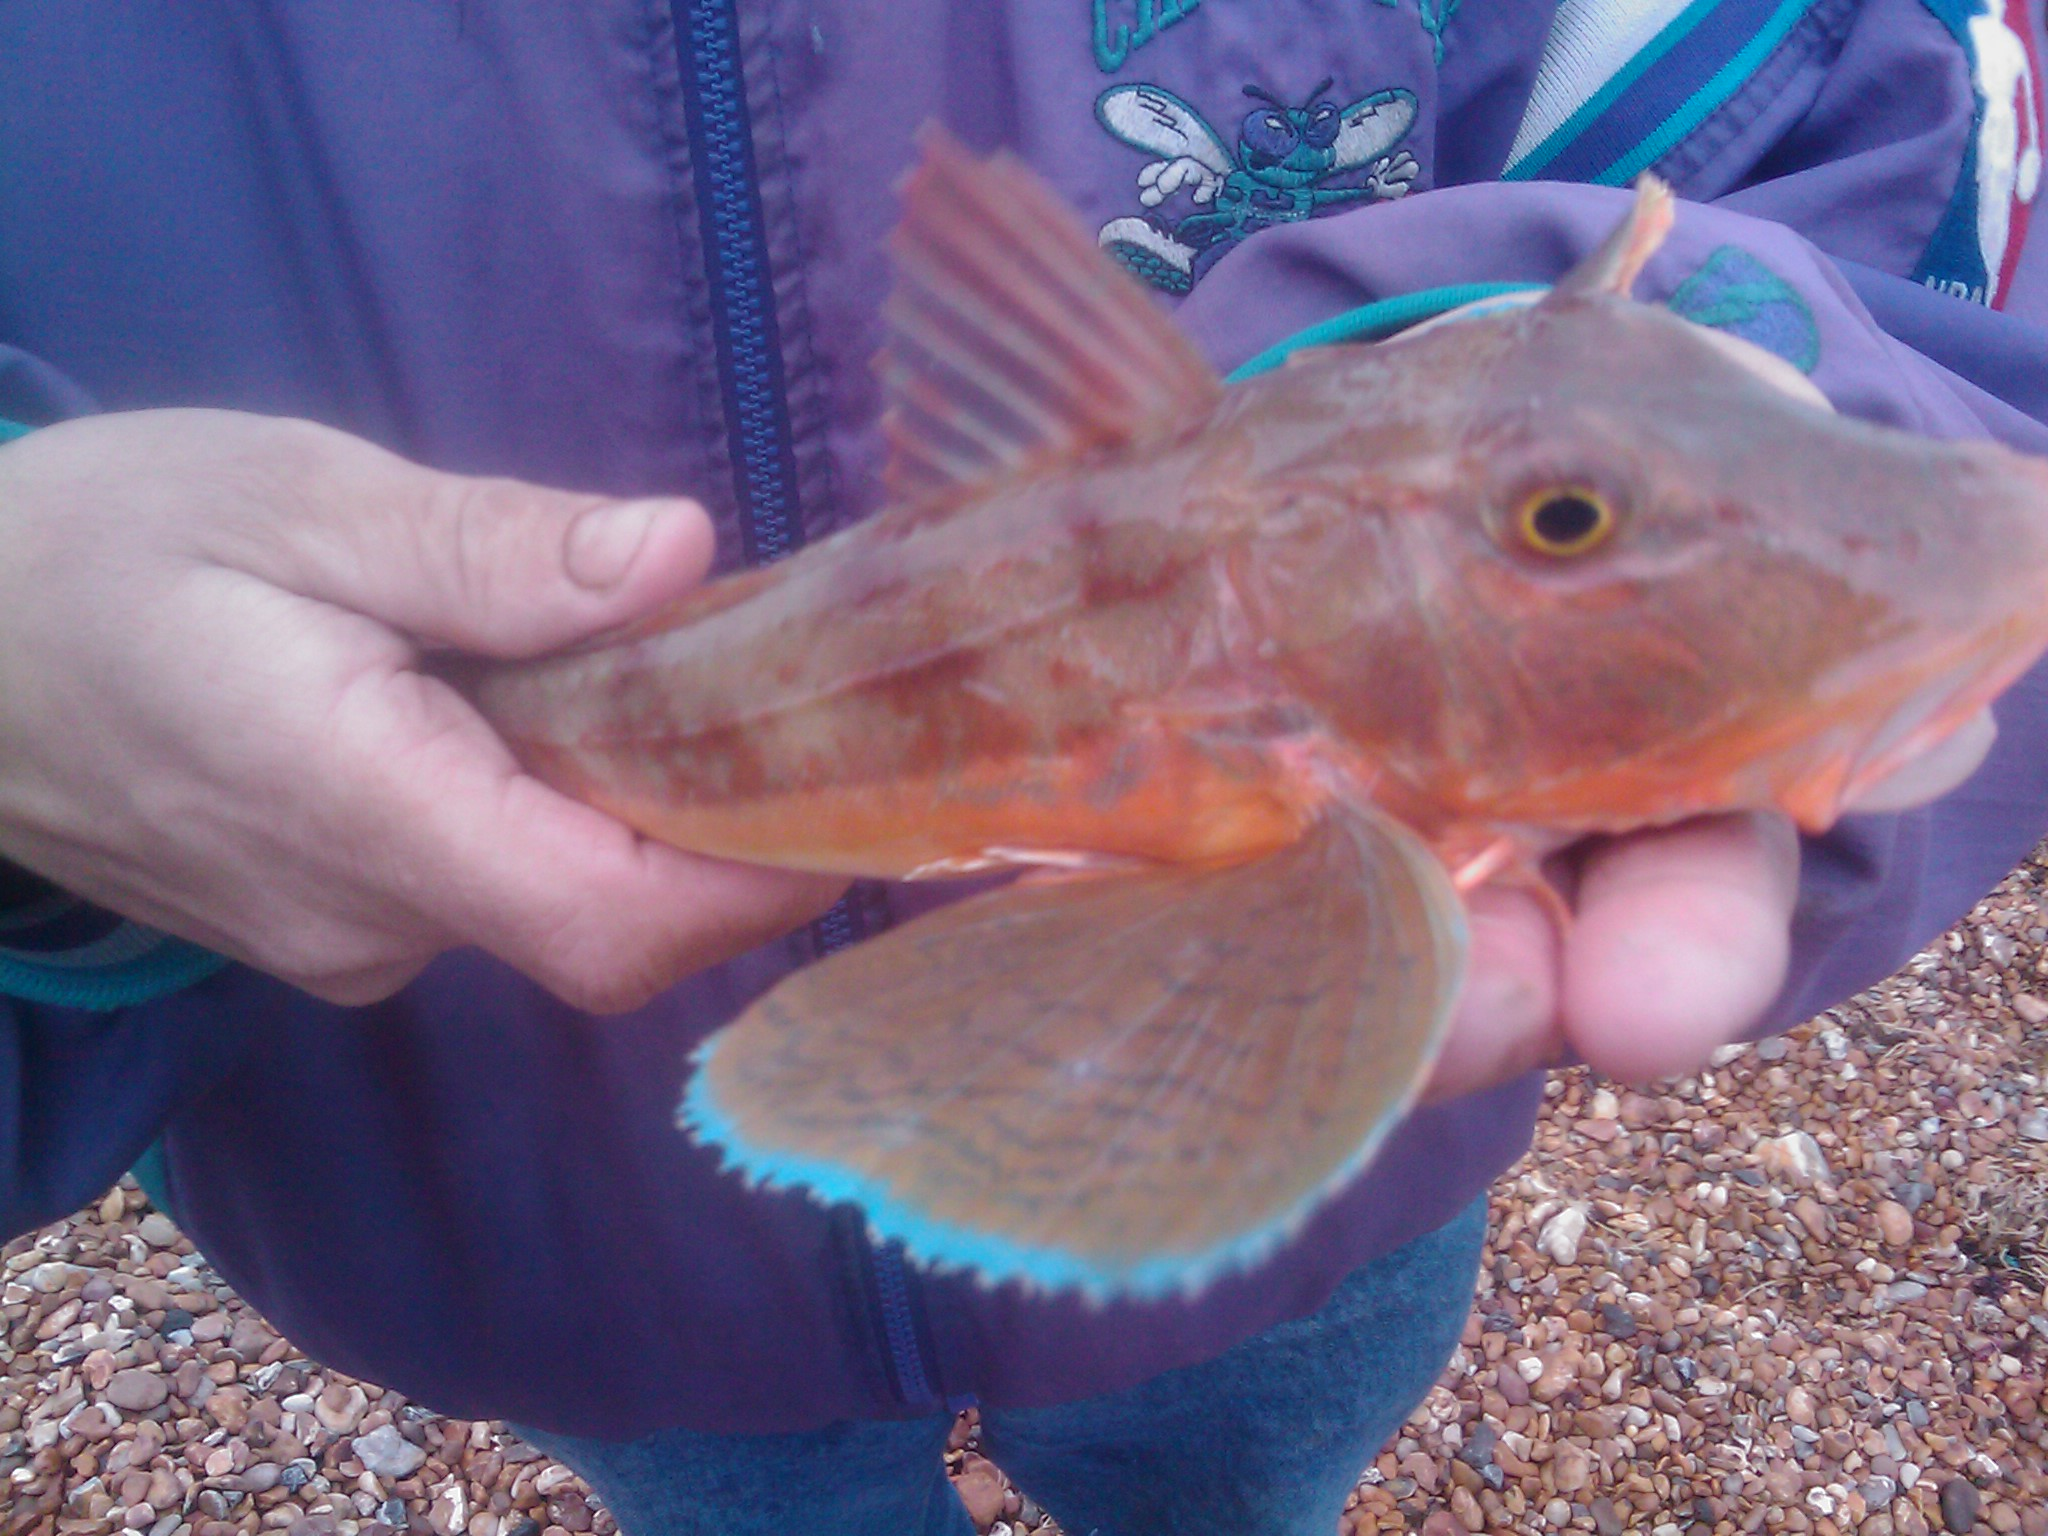 My Gurnard, modelled by Malc